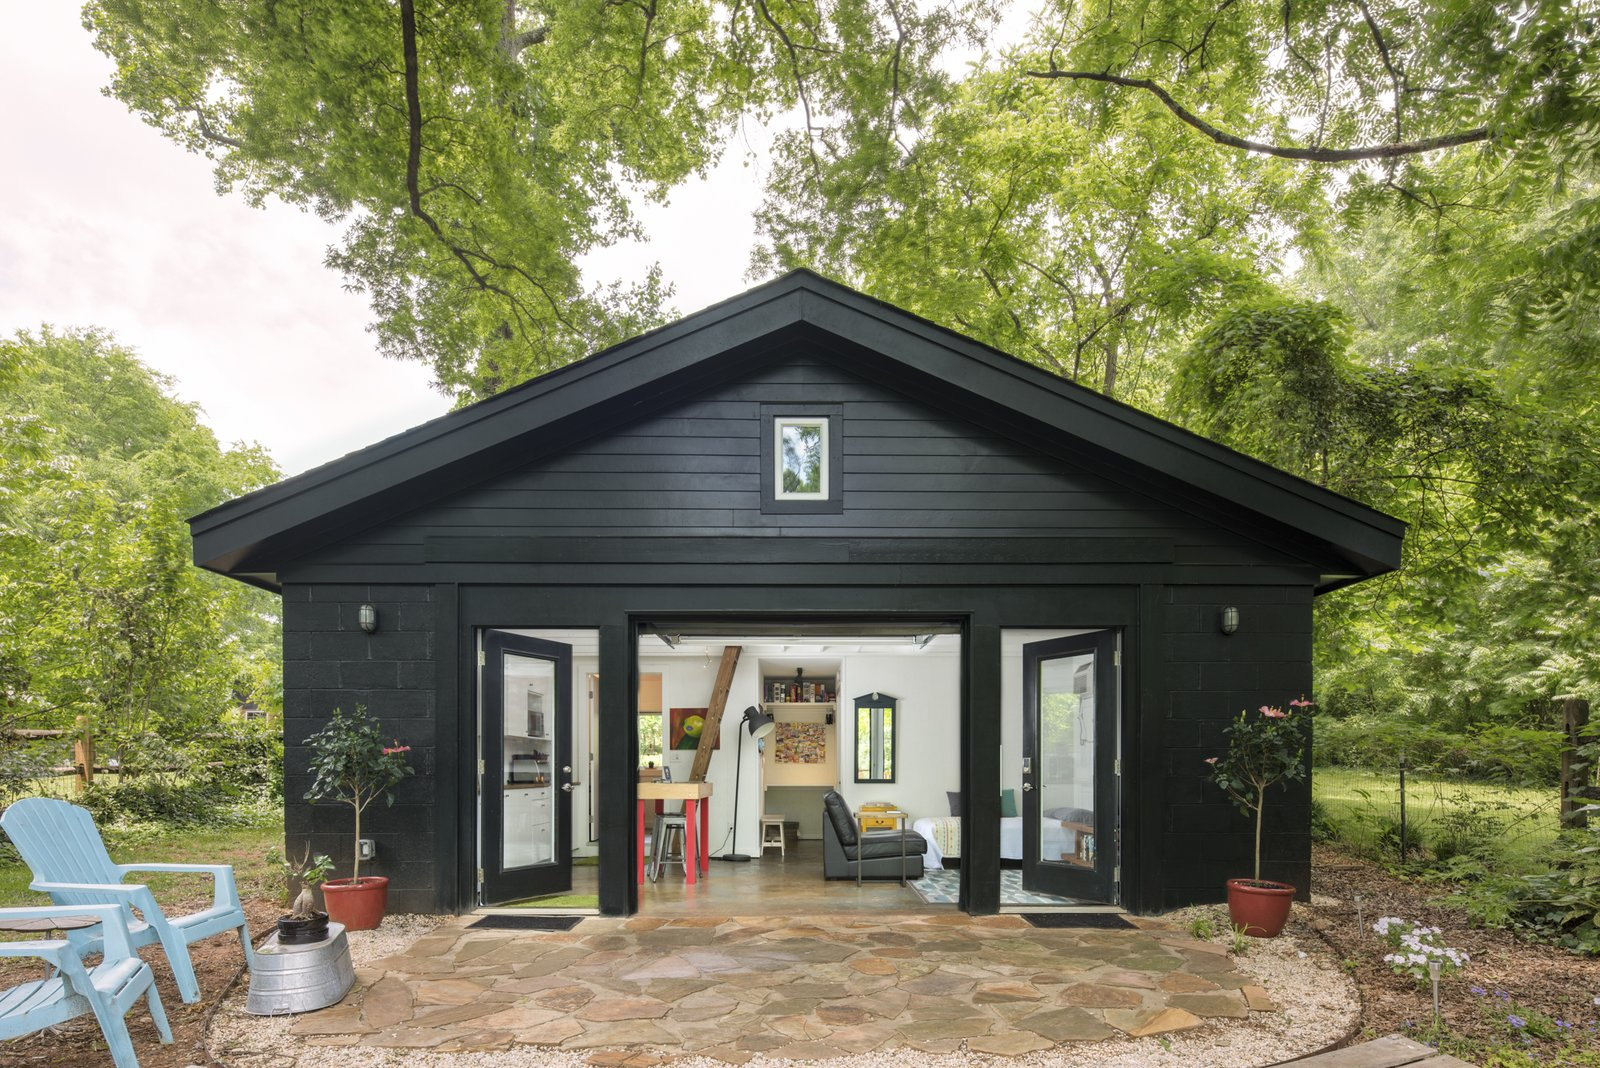 Concrete Siding Material, House Building Type, Living Room, Trees, and Back Yard The old garage is now an eclectic, modern, tiny home.   SvartKub